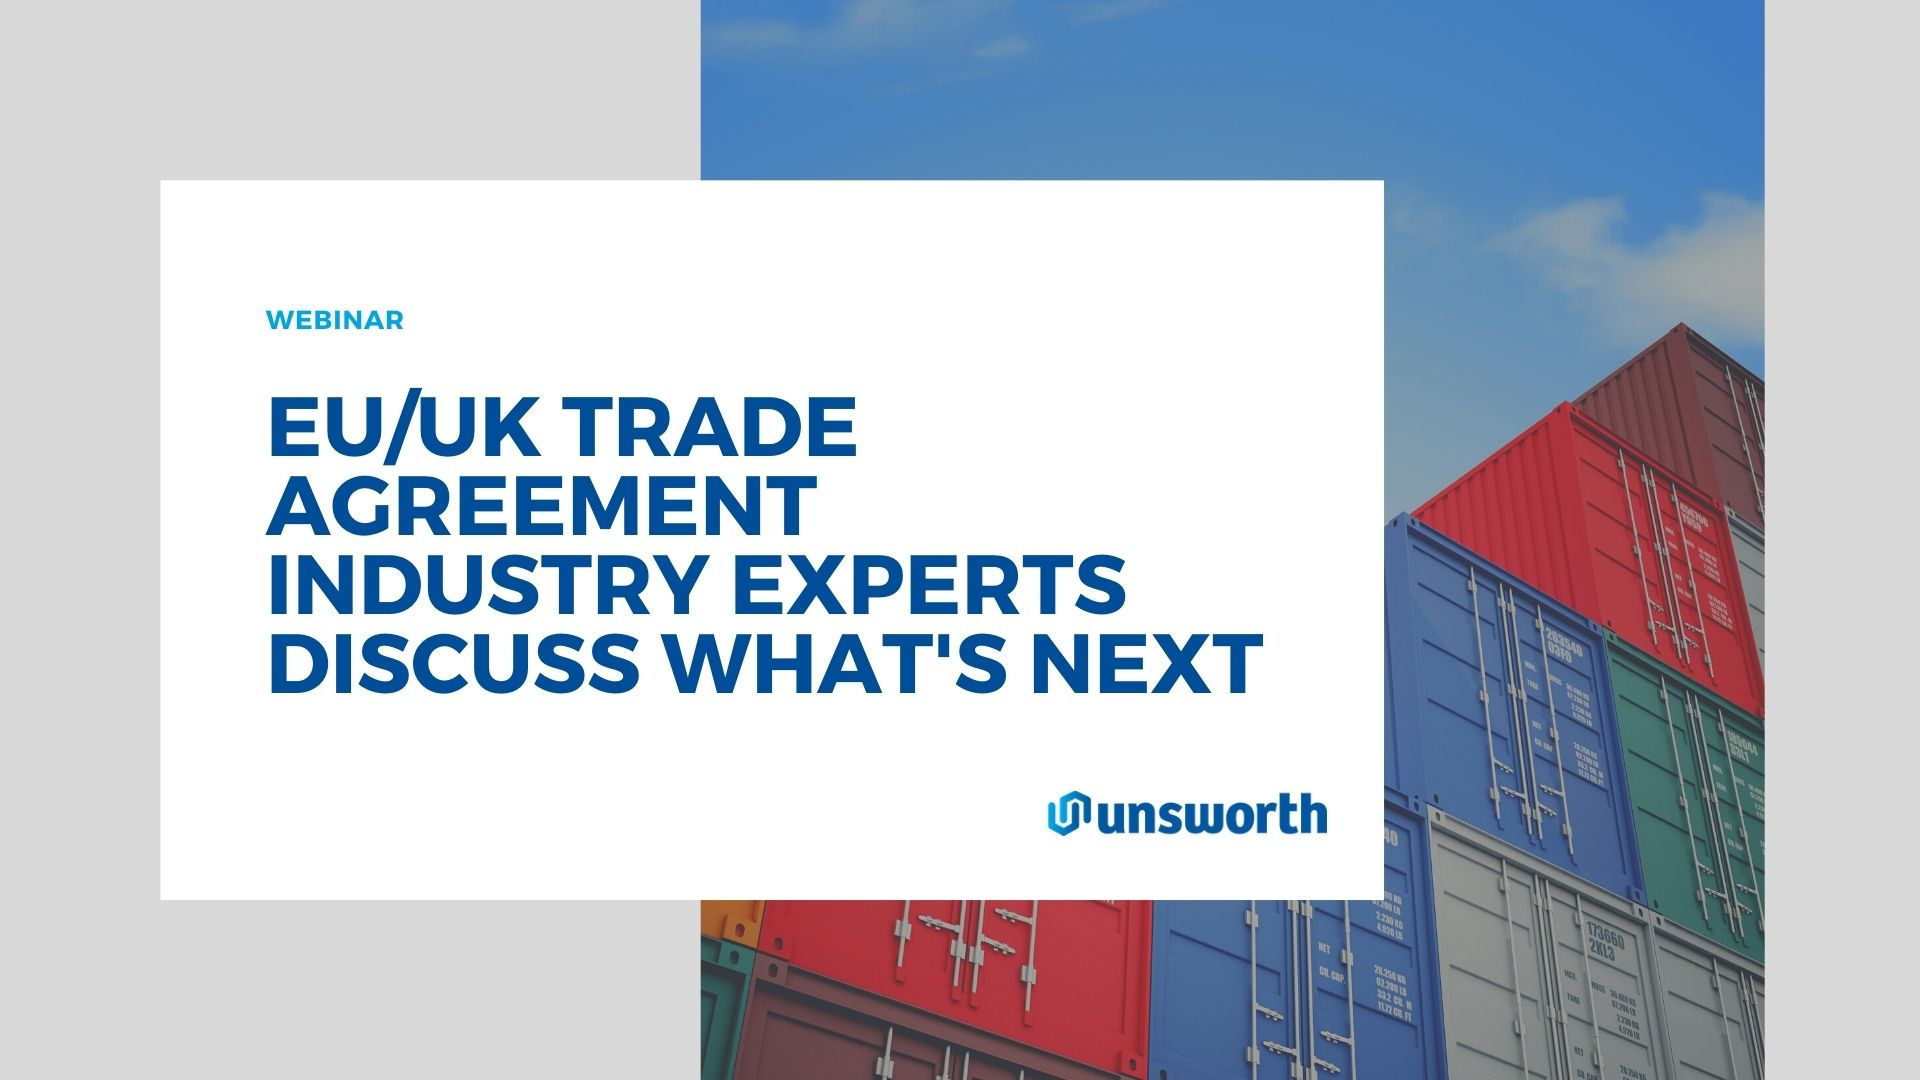 Brexit: EU/UK Trade Agreement - Industry Experts Discuss What's Next | Unsworth Webinar